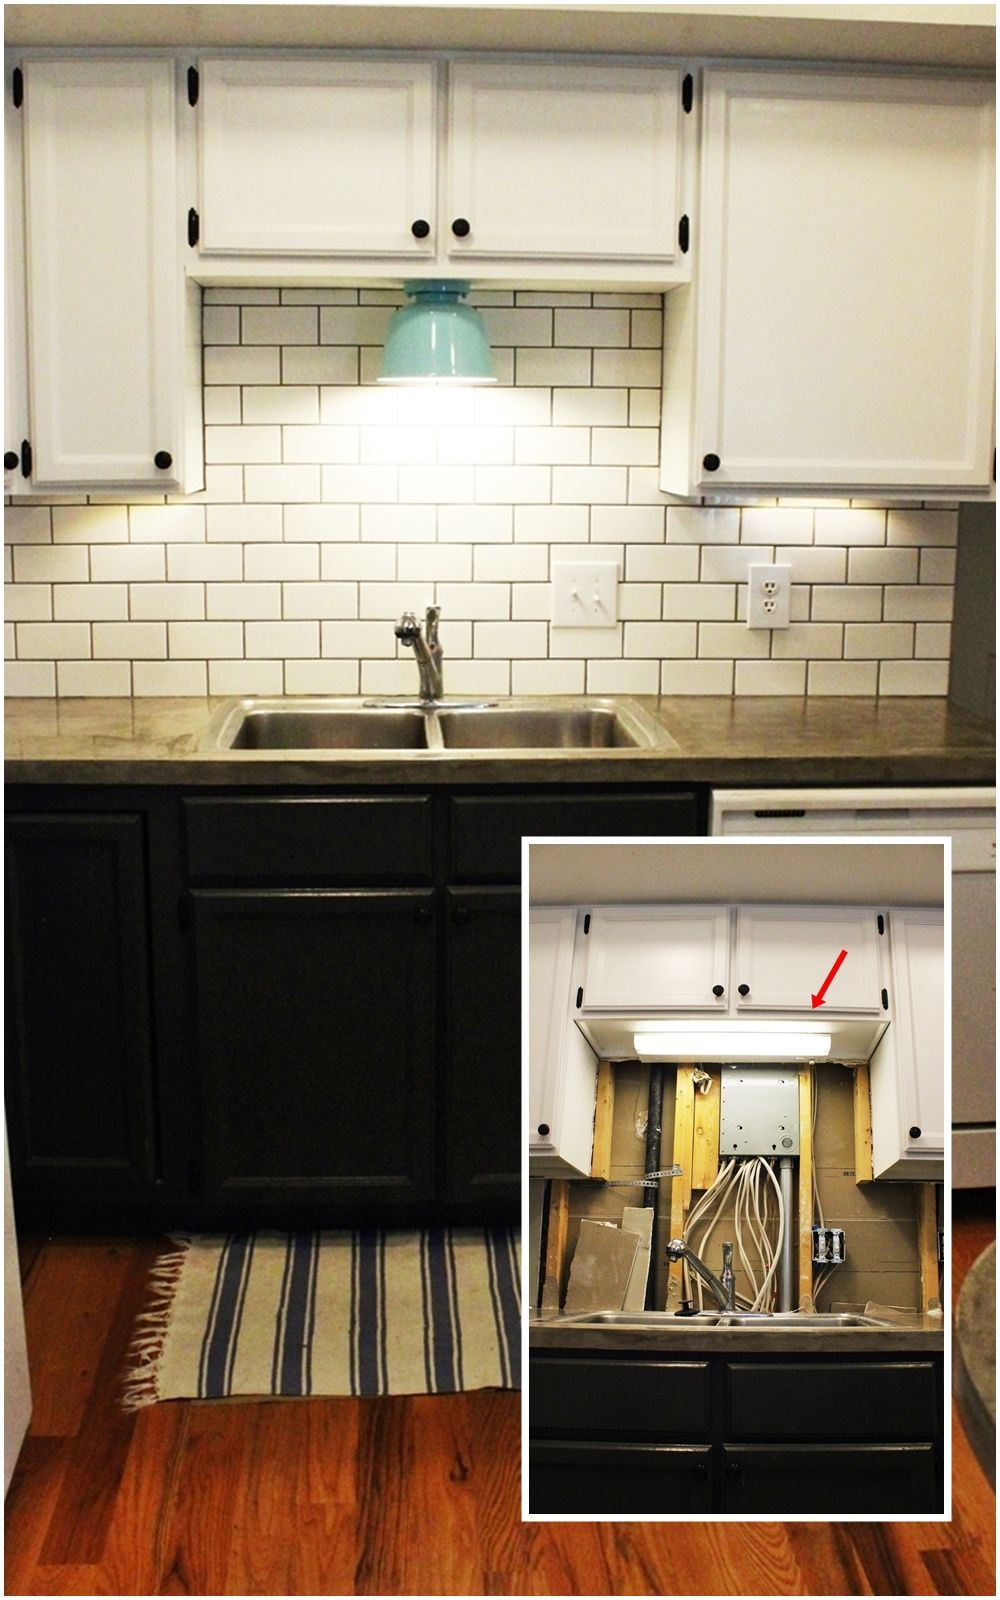 Https Efurnituremart Wordpress Com 2016 01 10 Diy Kitchen Lighting Upgrade Led Under Cabinet Lights Above The Sink Light